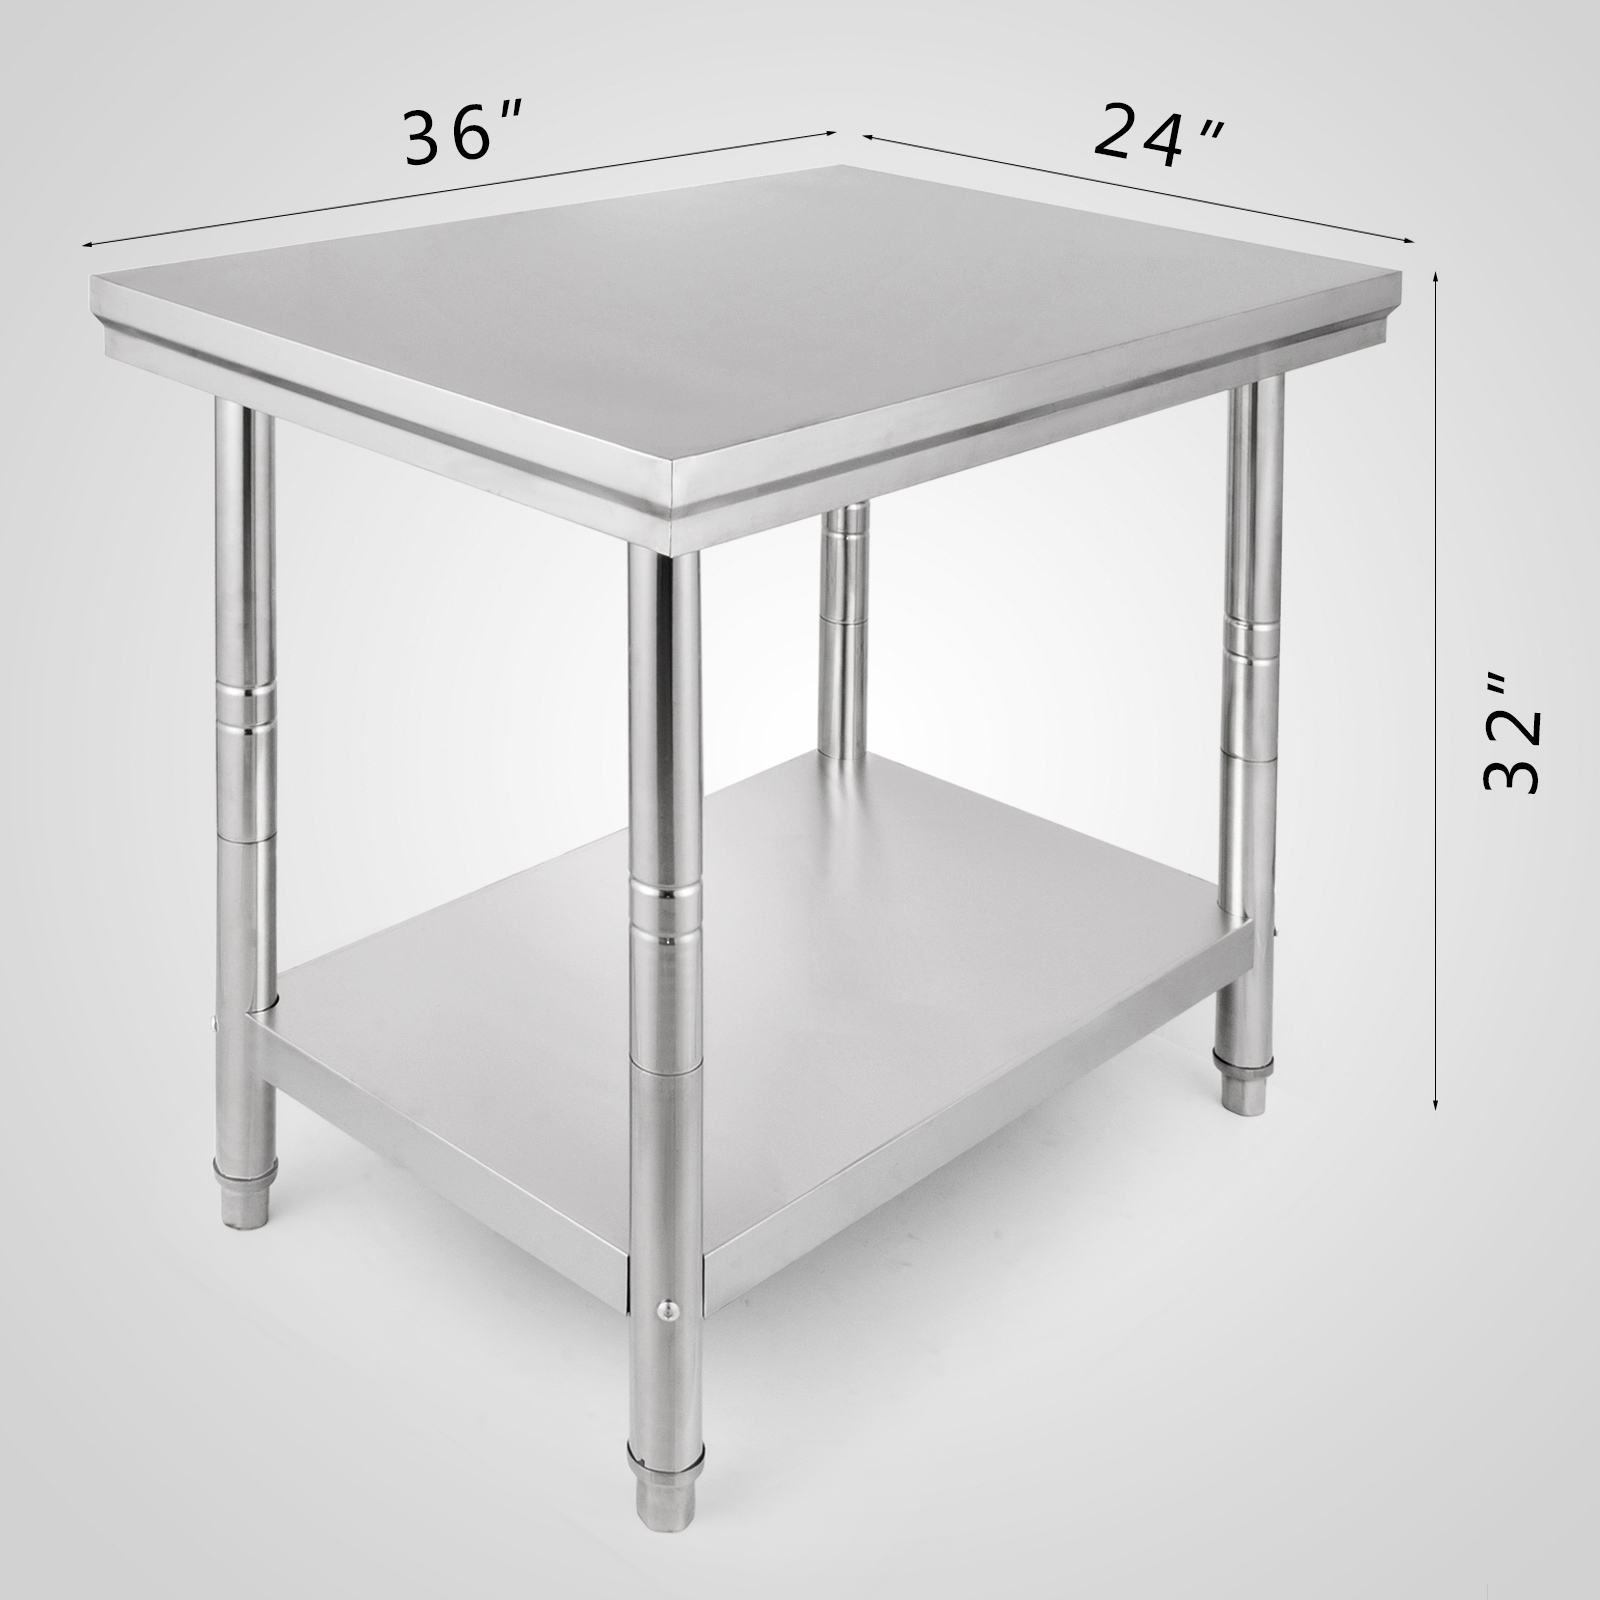 610mmx915mm stainless steel work bench food prep kitchen table top catering ebay. Black Bedroom Furniture Sets. Home Design Ideas